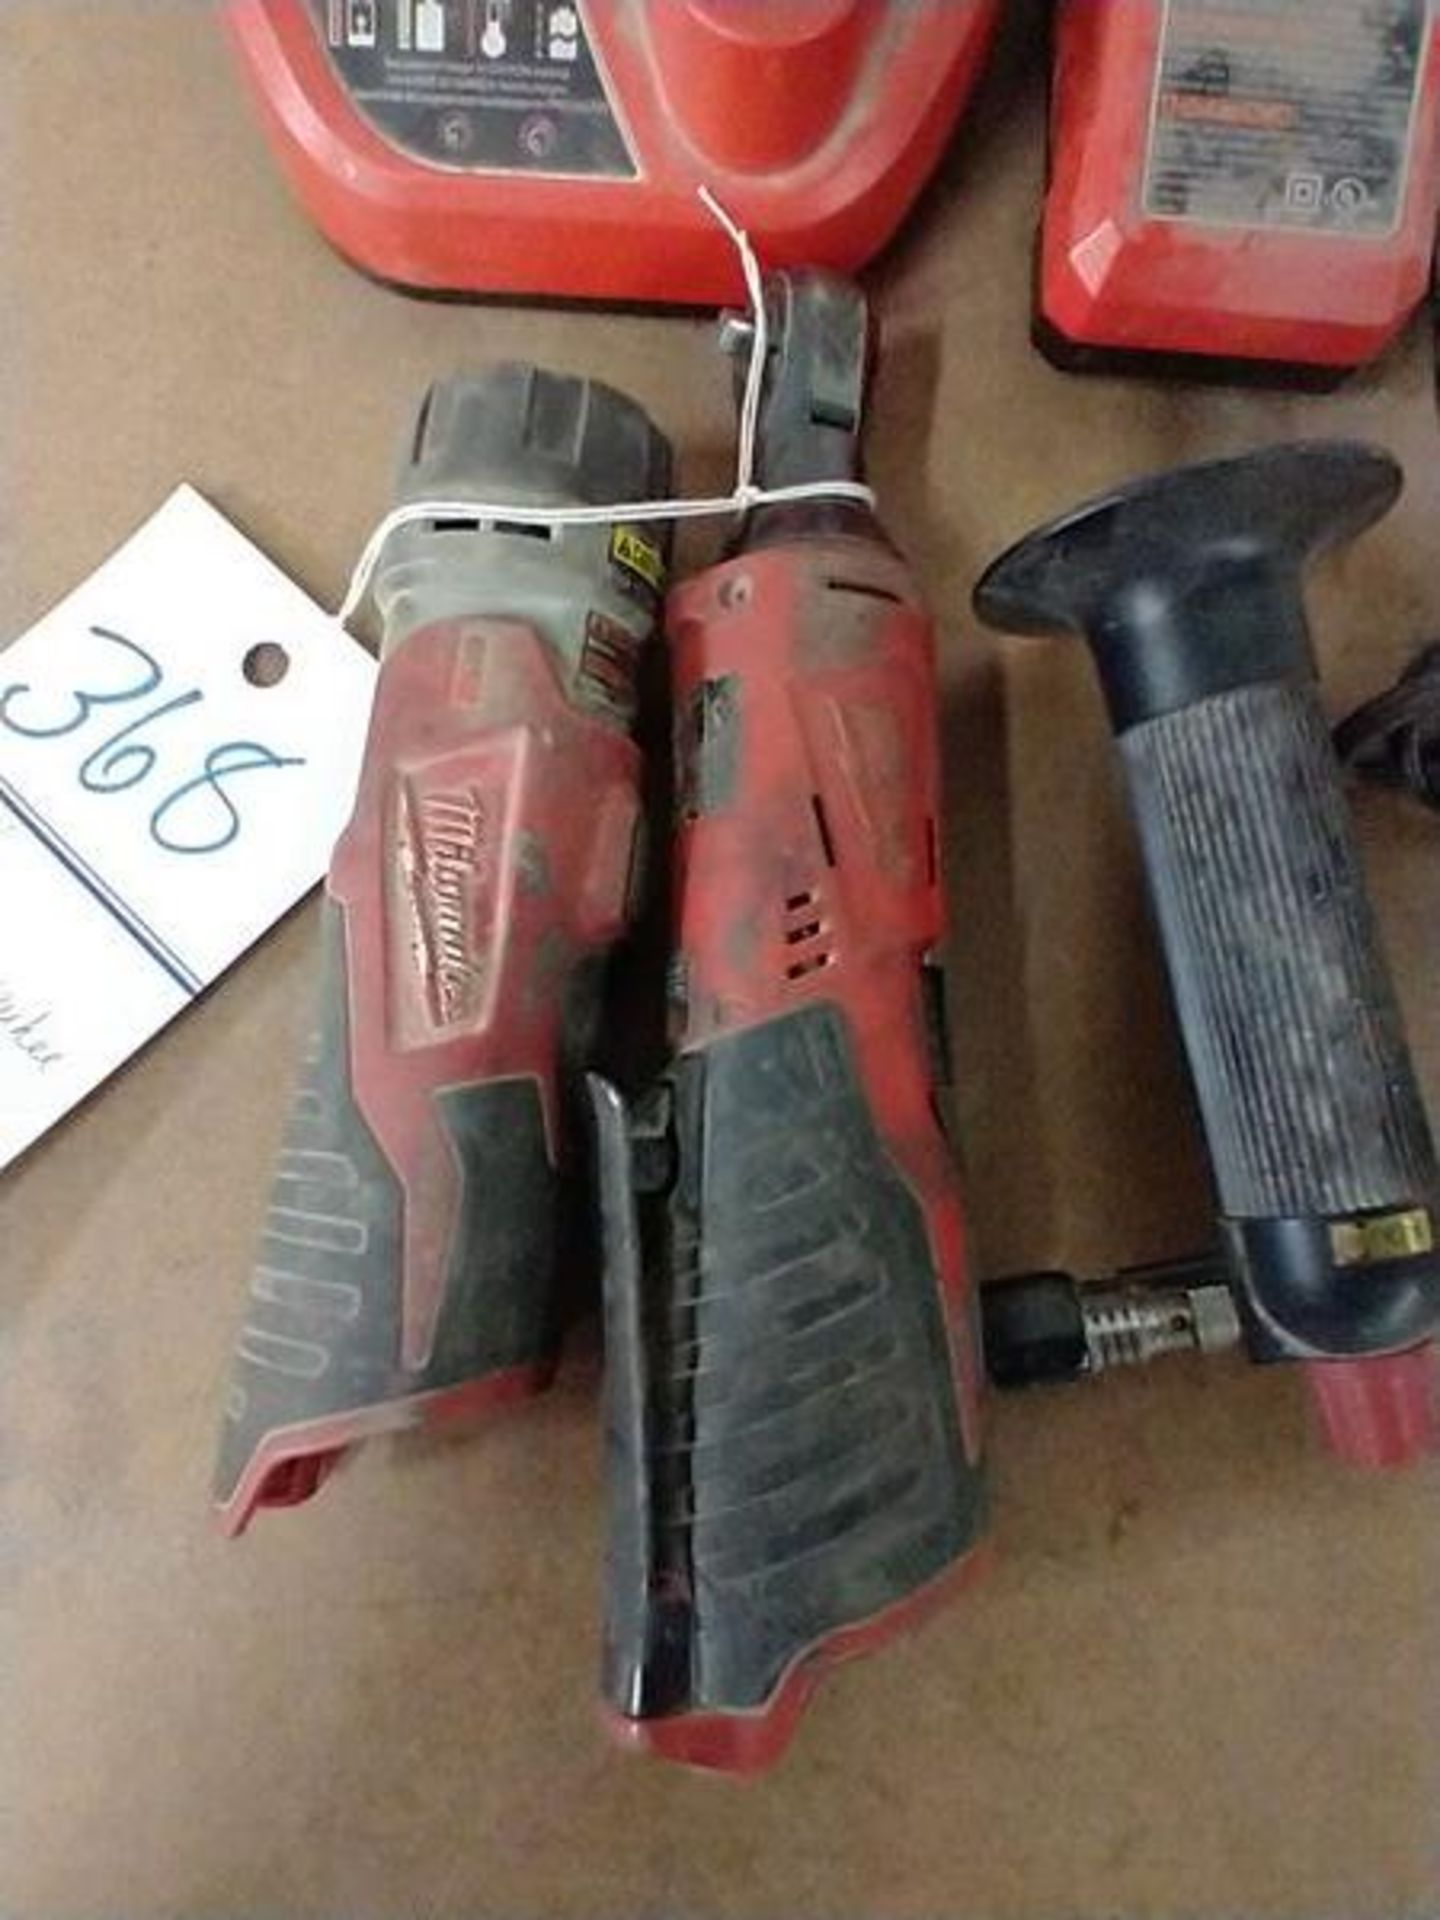 LOT OF MILWAUKEE TOOLS - NO BATTERIES - Image 2 of 3